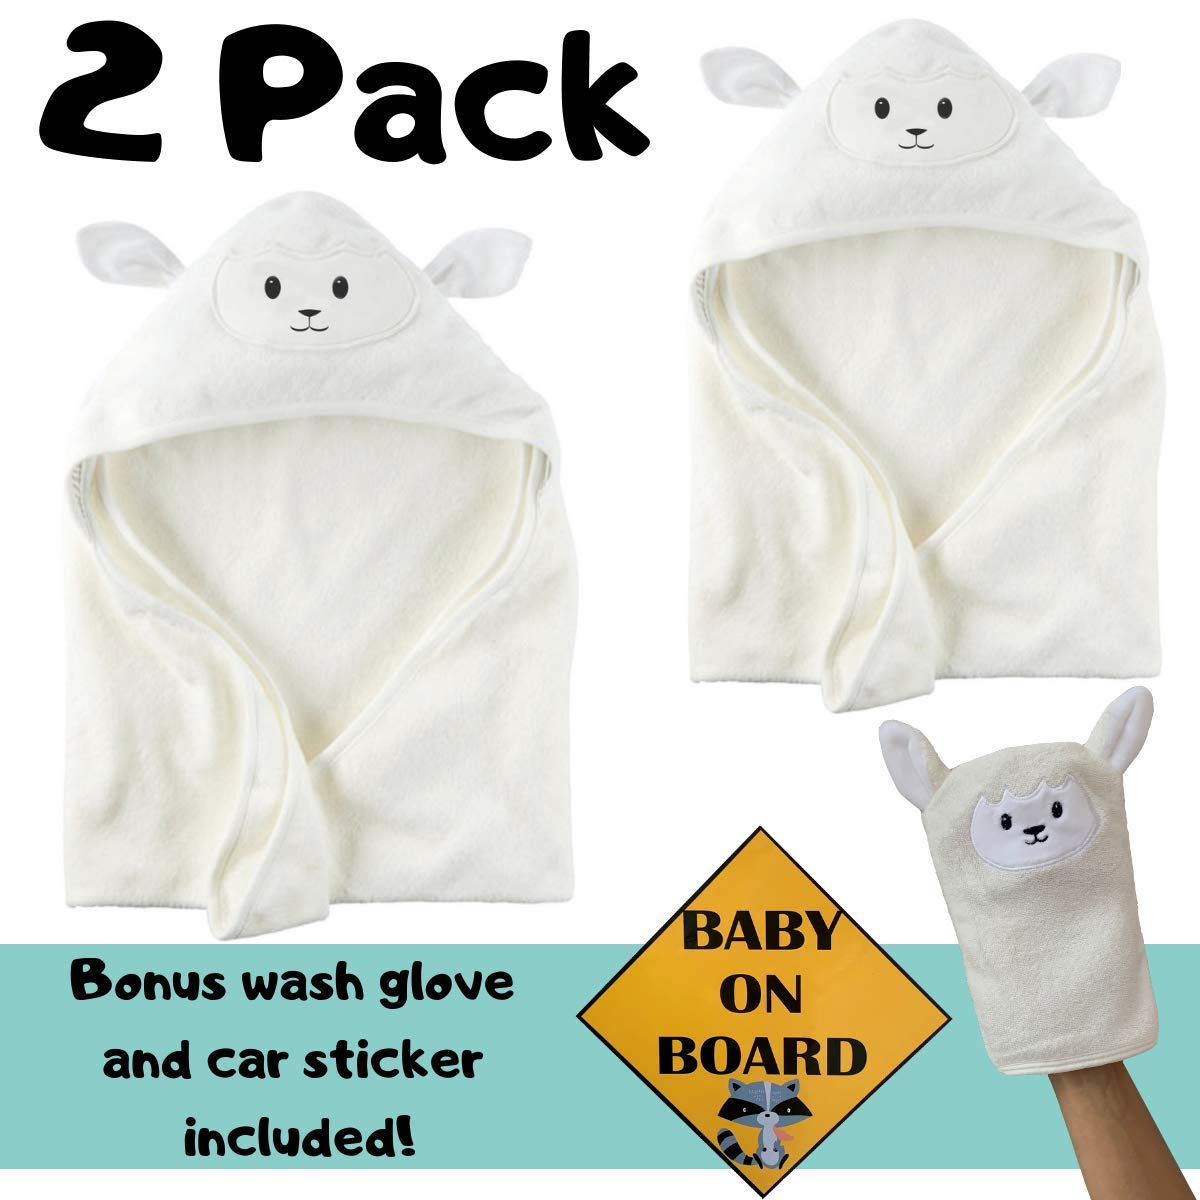 Organic Bamboo Baby Hooded Towel (2-Pack) | Bonus Wash Glove and Car Sticker | Ultra Soft and Super Absorbent Hooded Bath Towel with Cute Lamb Face | Great Baby Shower Present for Boy or Girl